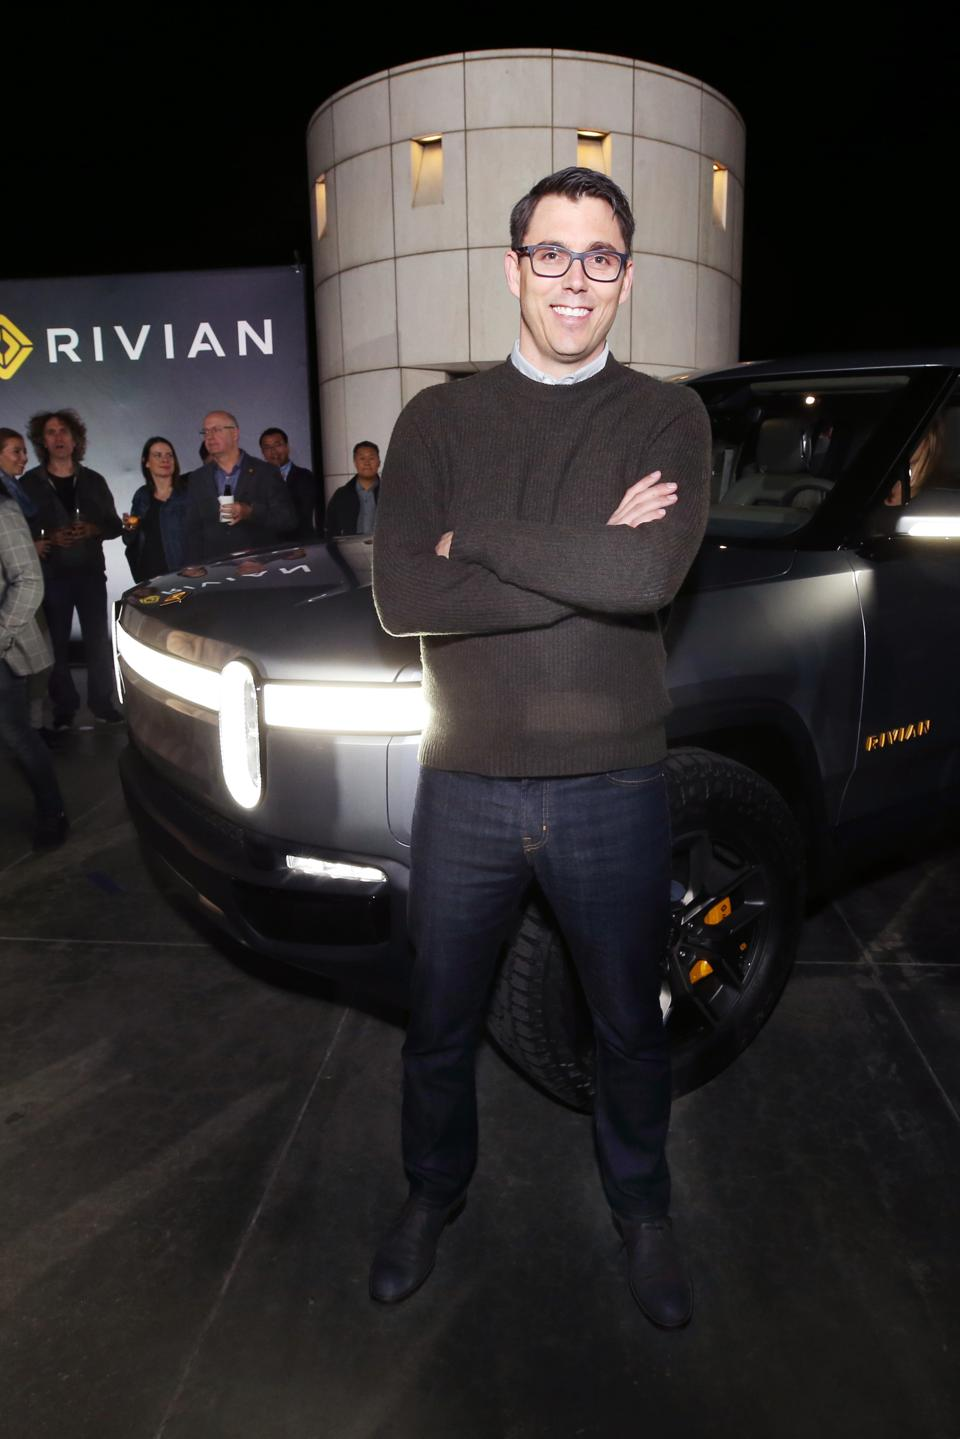 Rivian Unveils First-Ever Electric Pickup Truck Before Its Official Reveal At The LA Auto Show